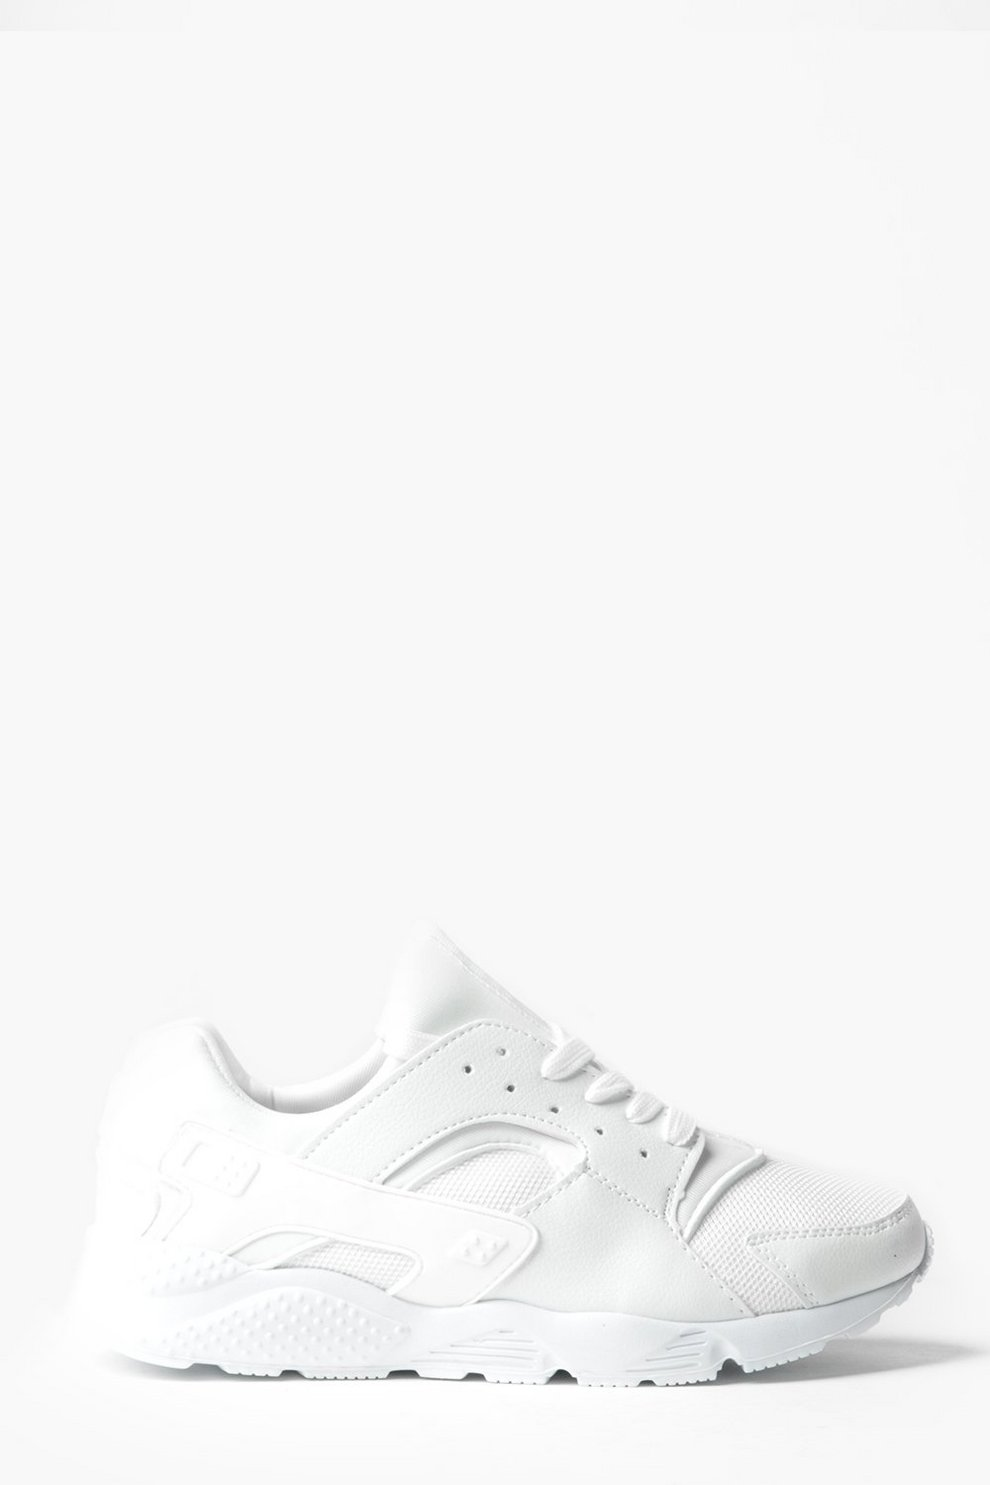 boohoo Lace Up Running Trainer with Heel Detail